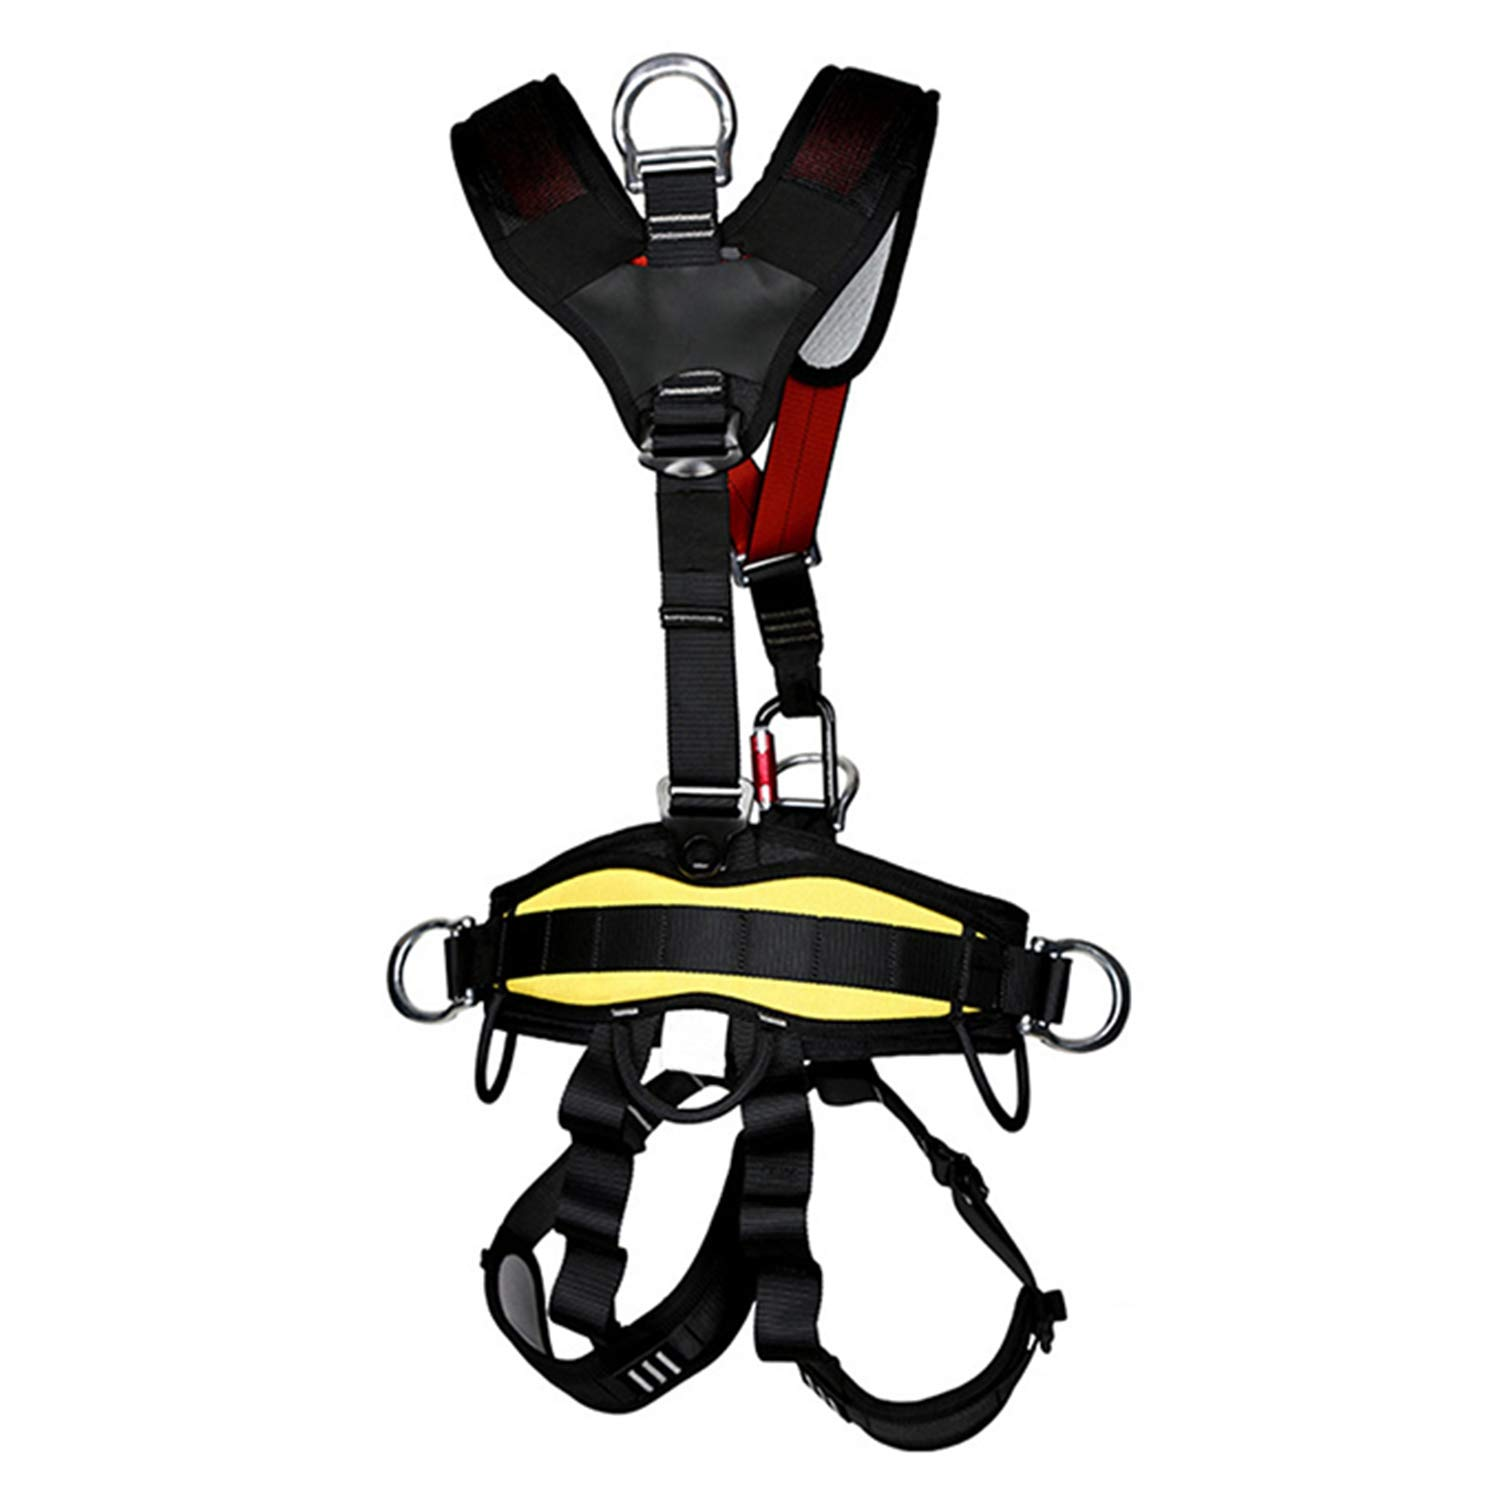 Nrpfell Outdoor Climbing Rock Rappelling Mountaineering Accessories Body Wearing Seat Belt Sitting Waist Bust Protection by Nrpfell (Image #2)